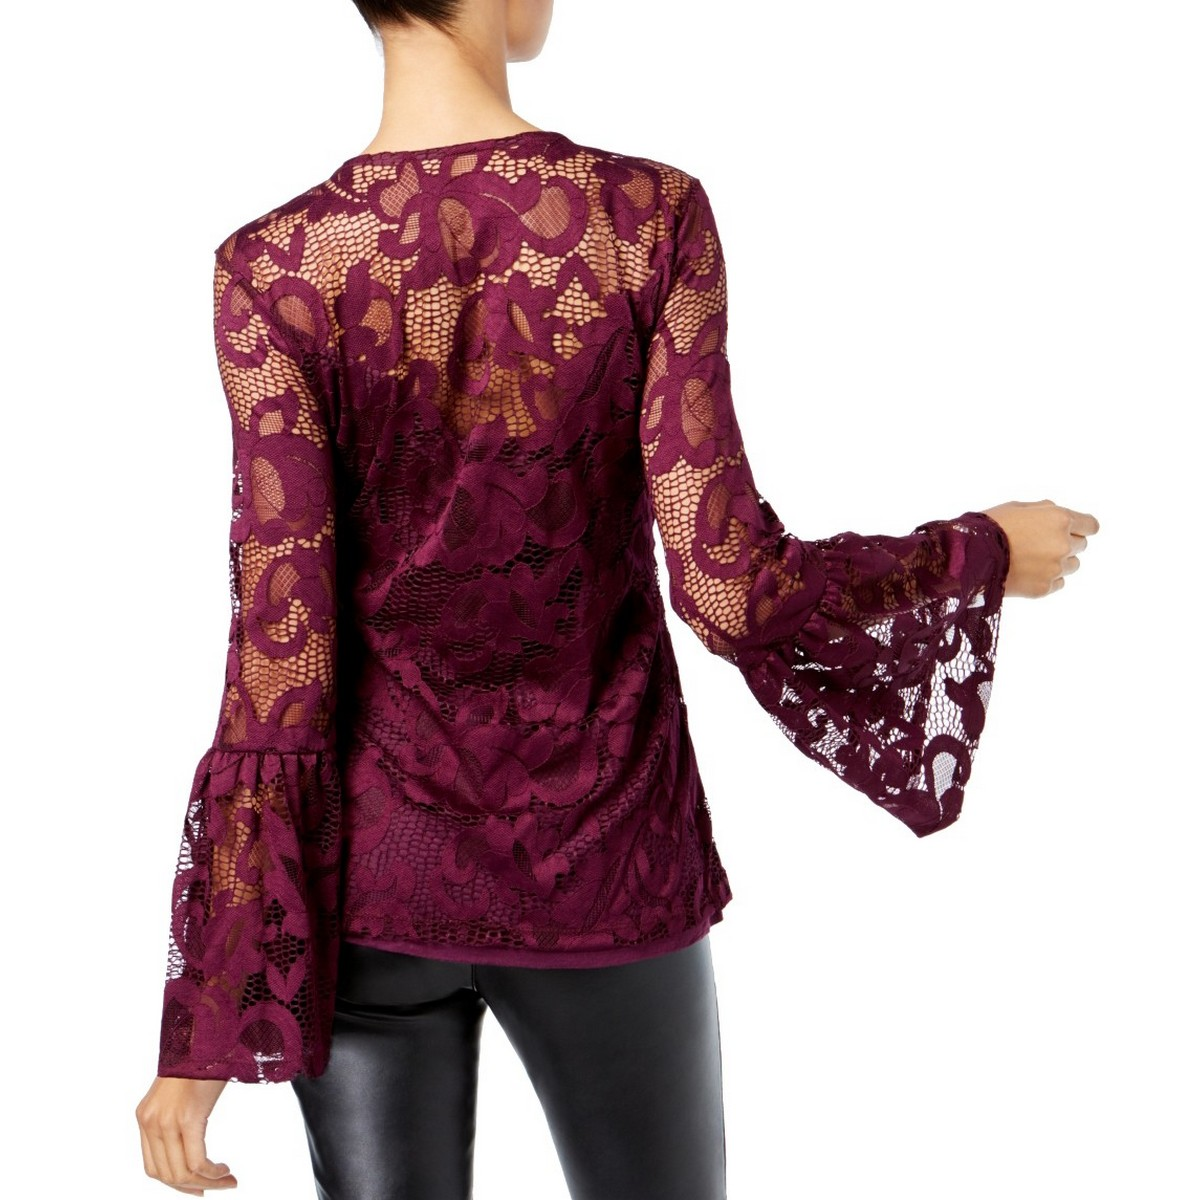 INC-NEW-Women-039-s-Lace-Bell-Sleeve-Scoop-Neck-Blouse-Shirt-Top-TEDO thumbnail 5